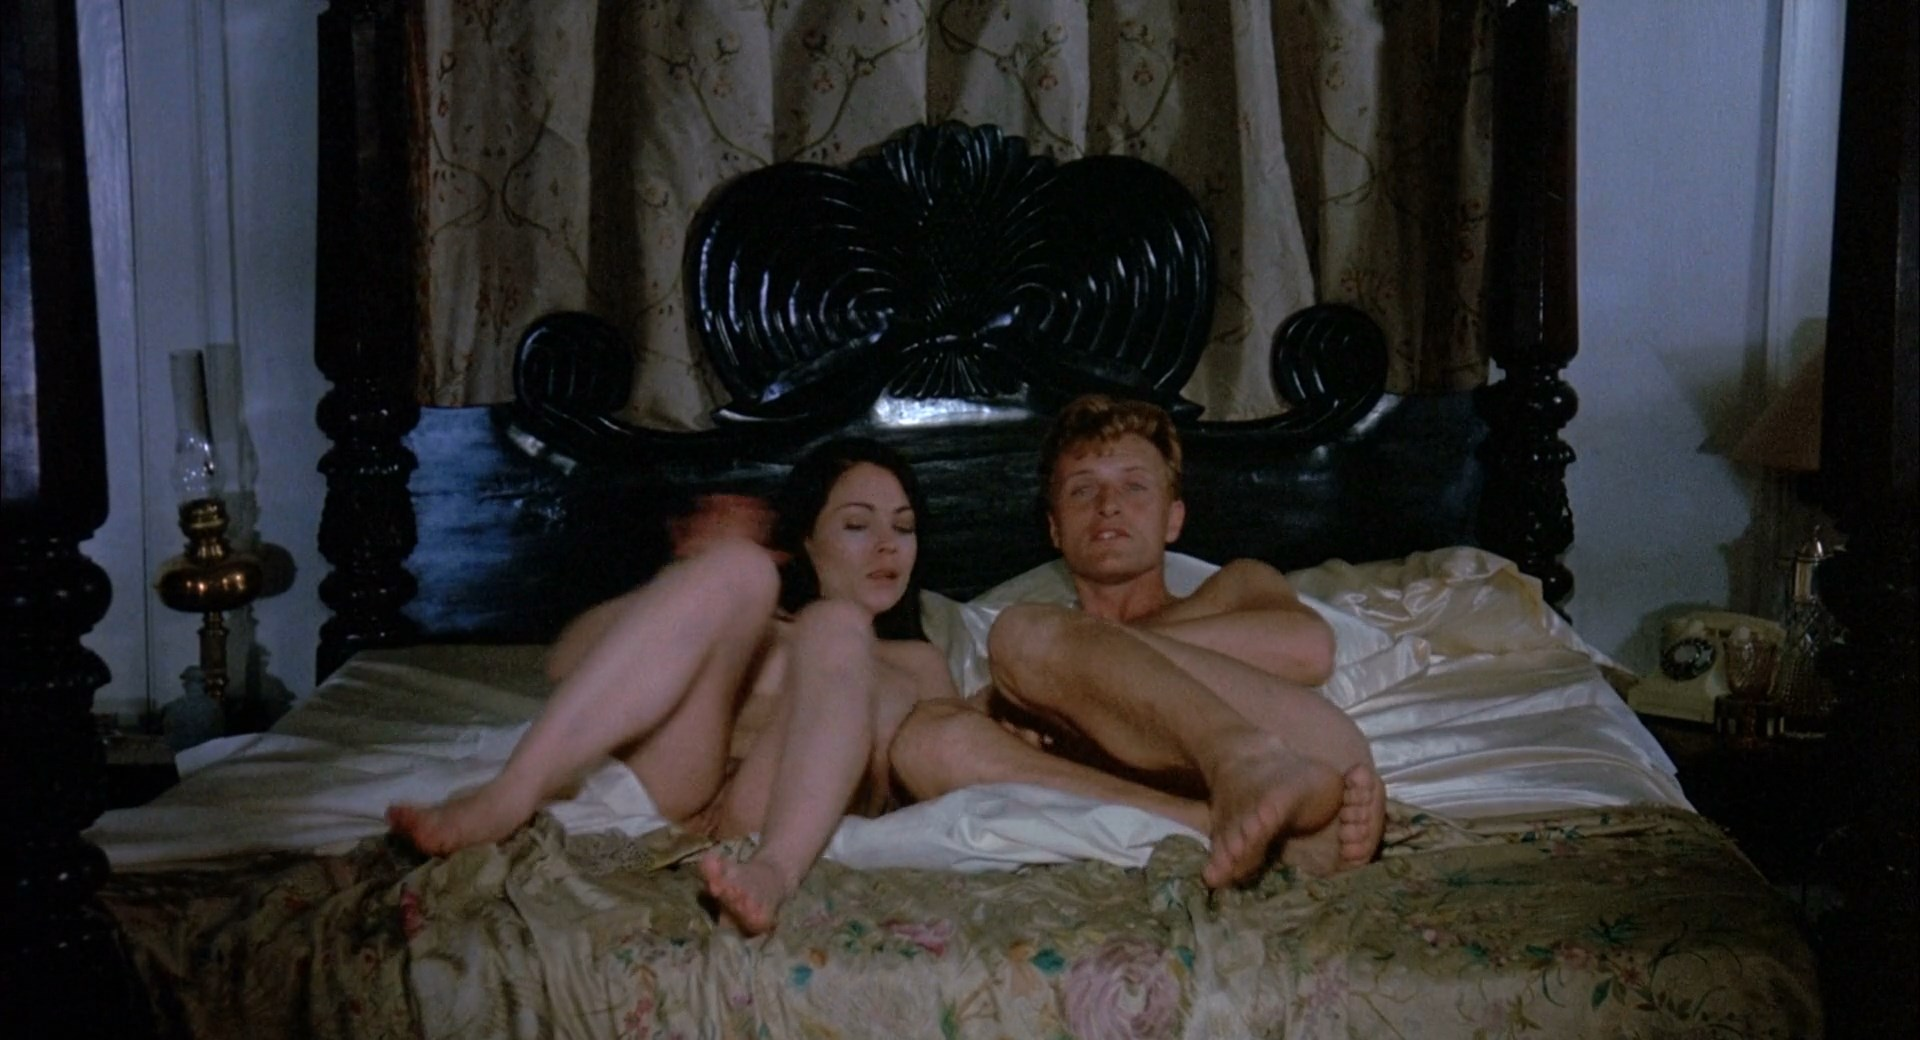 Naked theresa russell in straight time ancensored